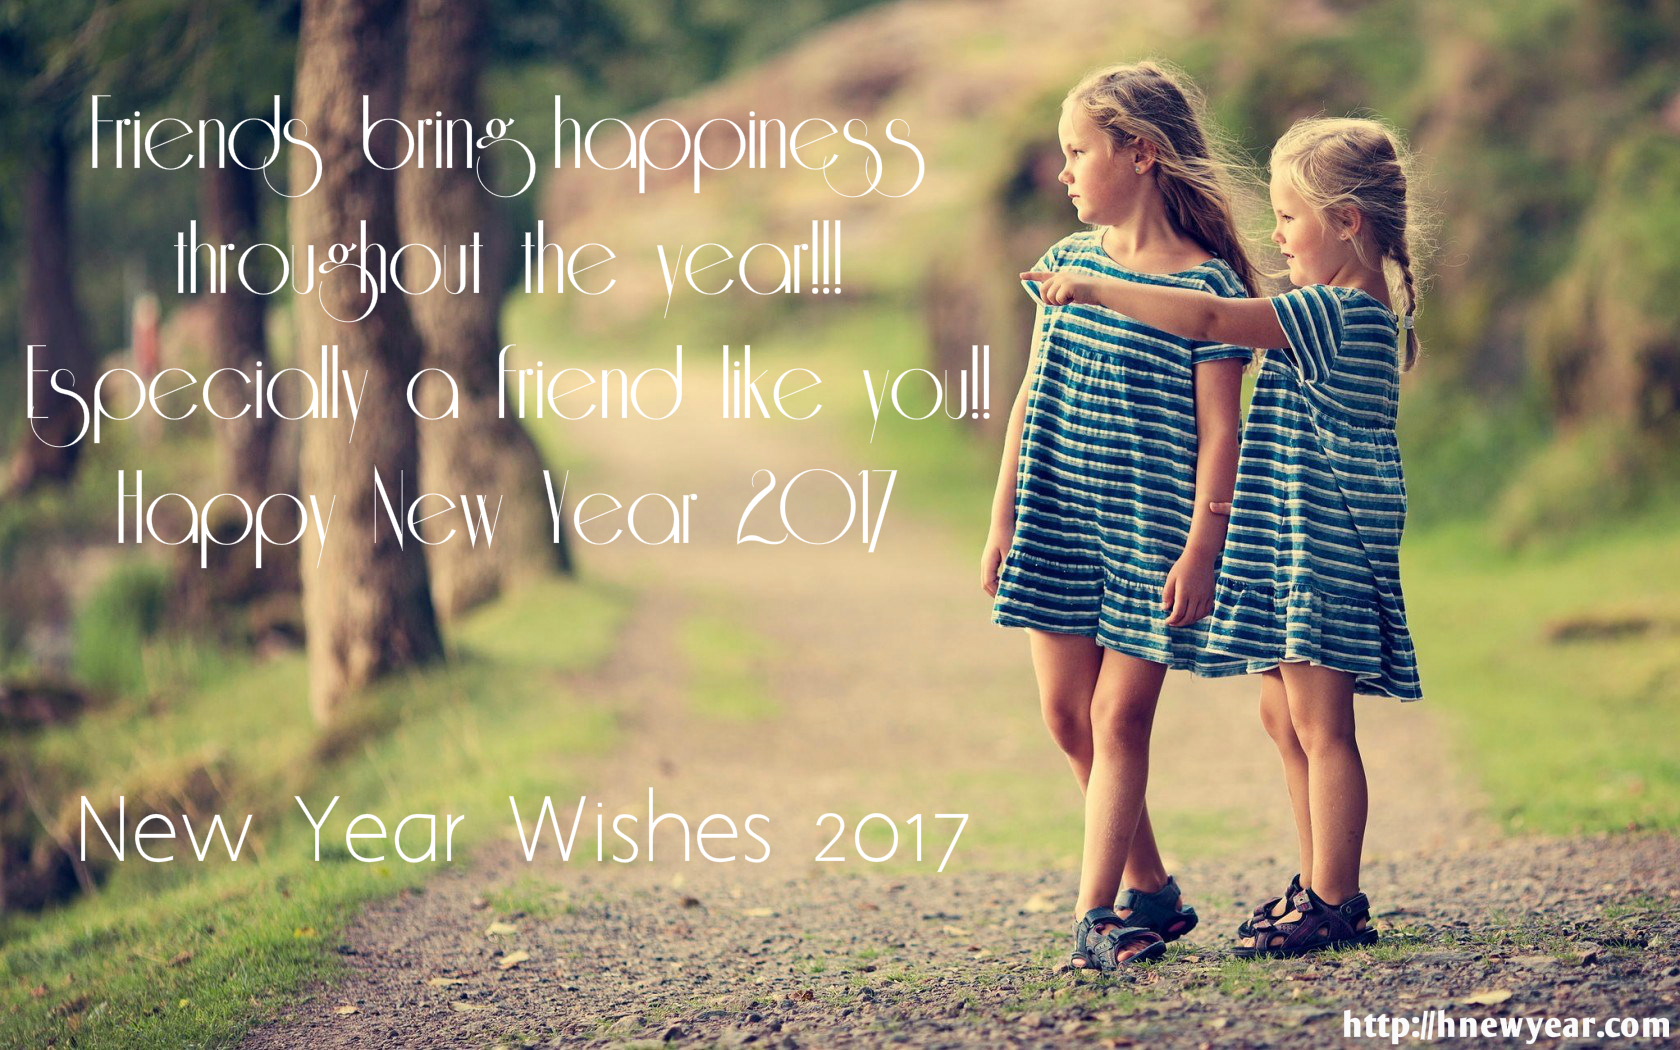 New Year Wishes for Friendship 2019 Quotes, Messages, Images